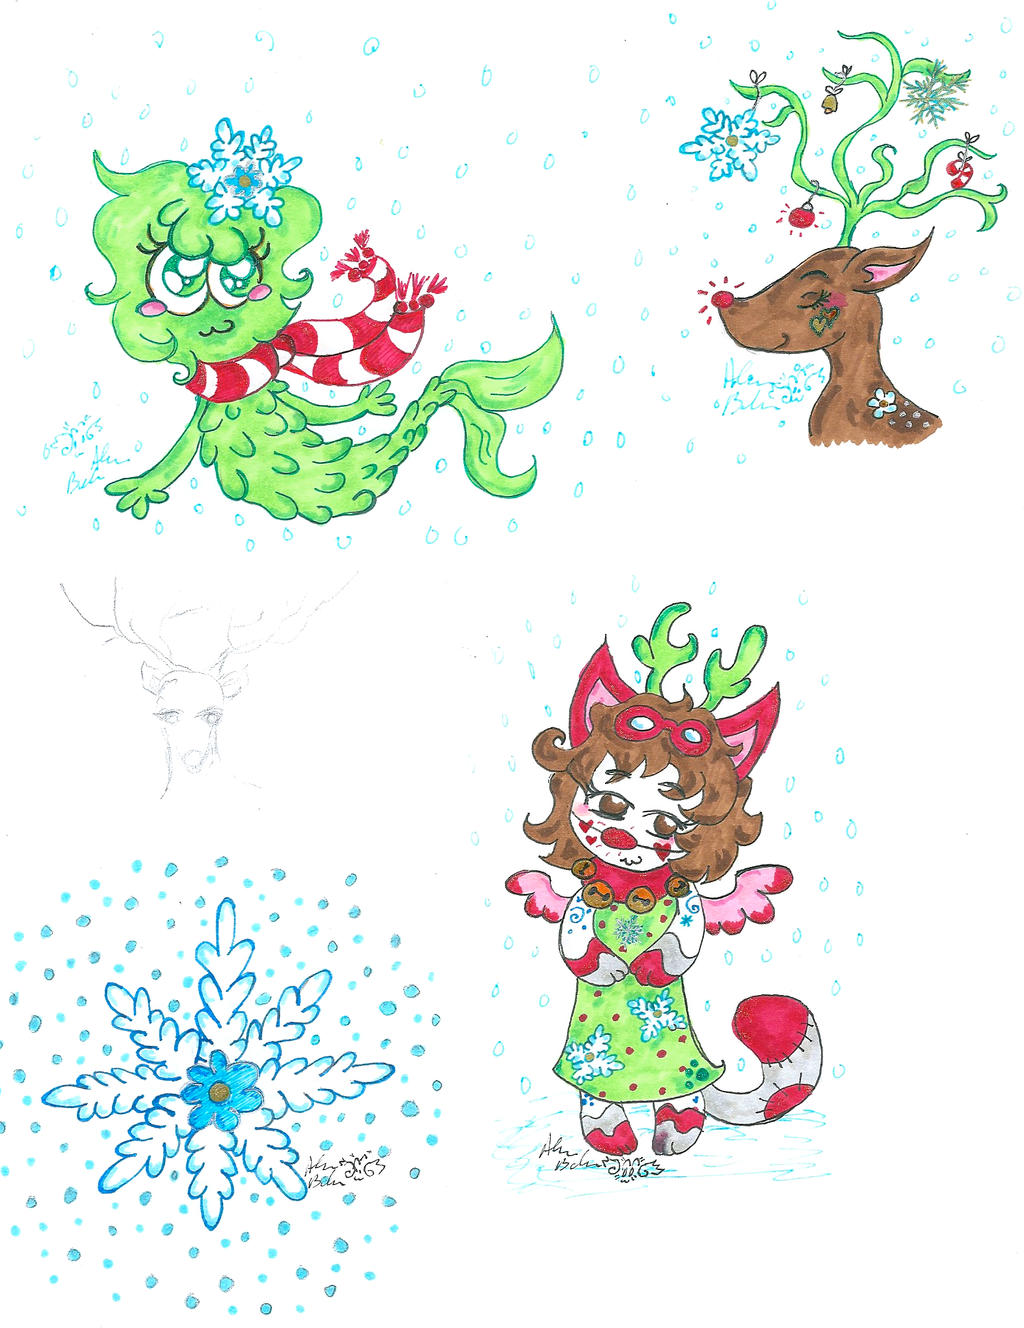 Christmas card ideas 2013 by kittychan2005 on deviantart for Christmas card drawing ideas